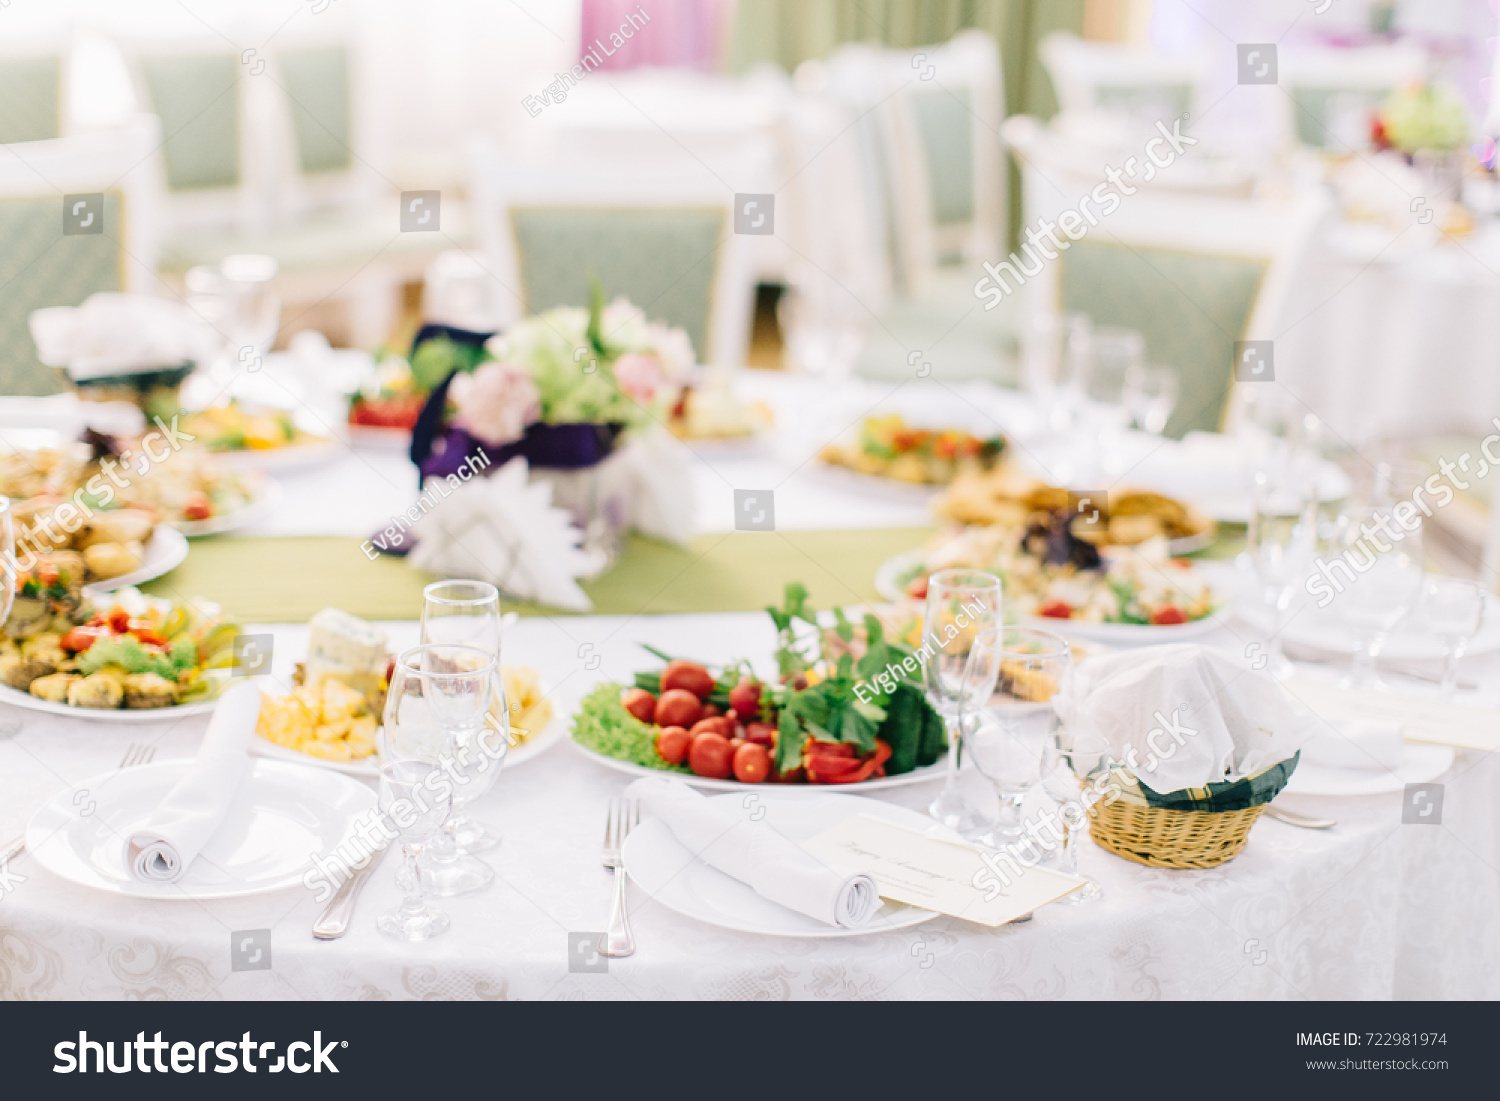 Banquet Table Setting Catering Table Set Stock Photo Edit Now - Catering table setting